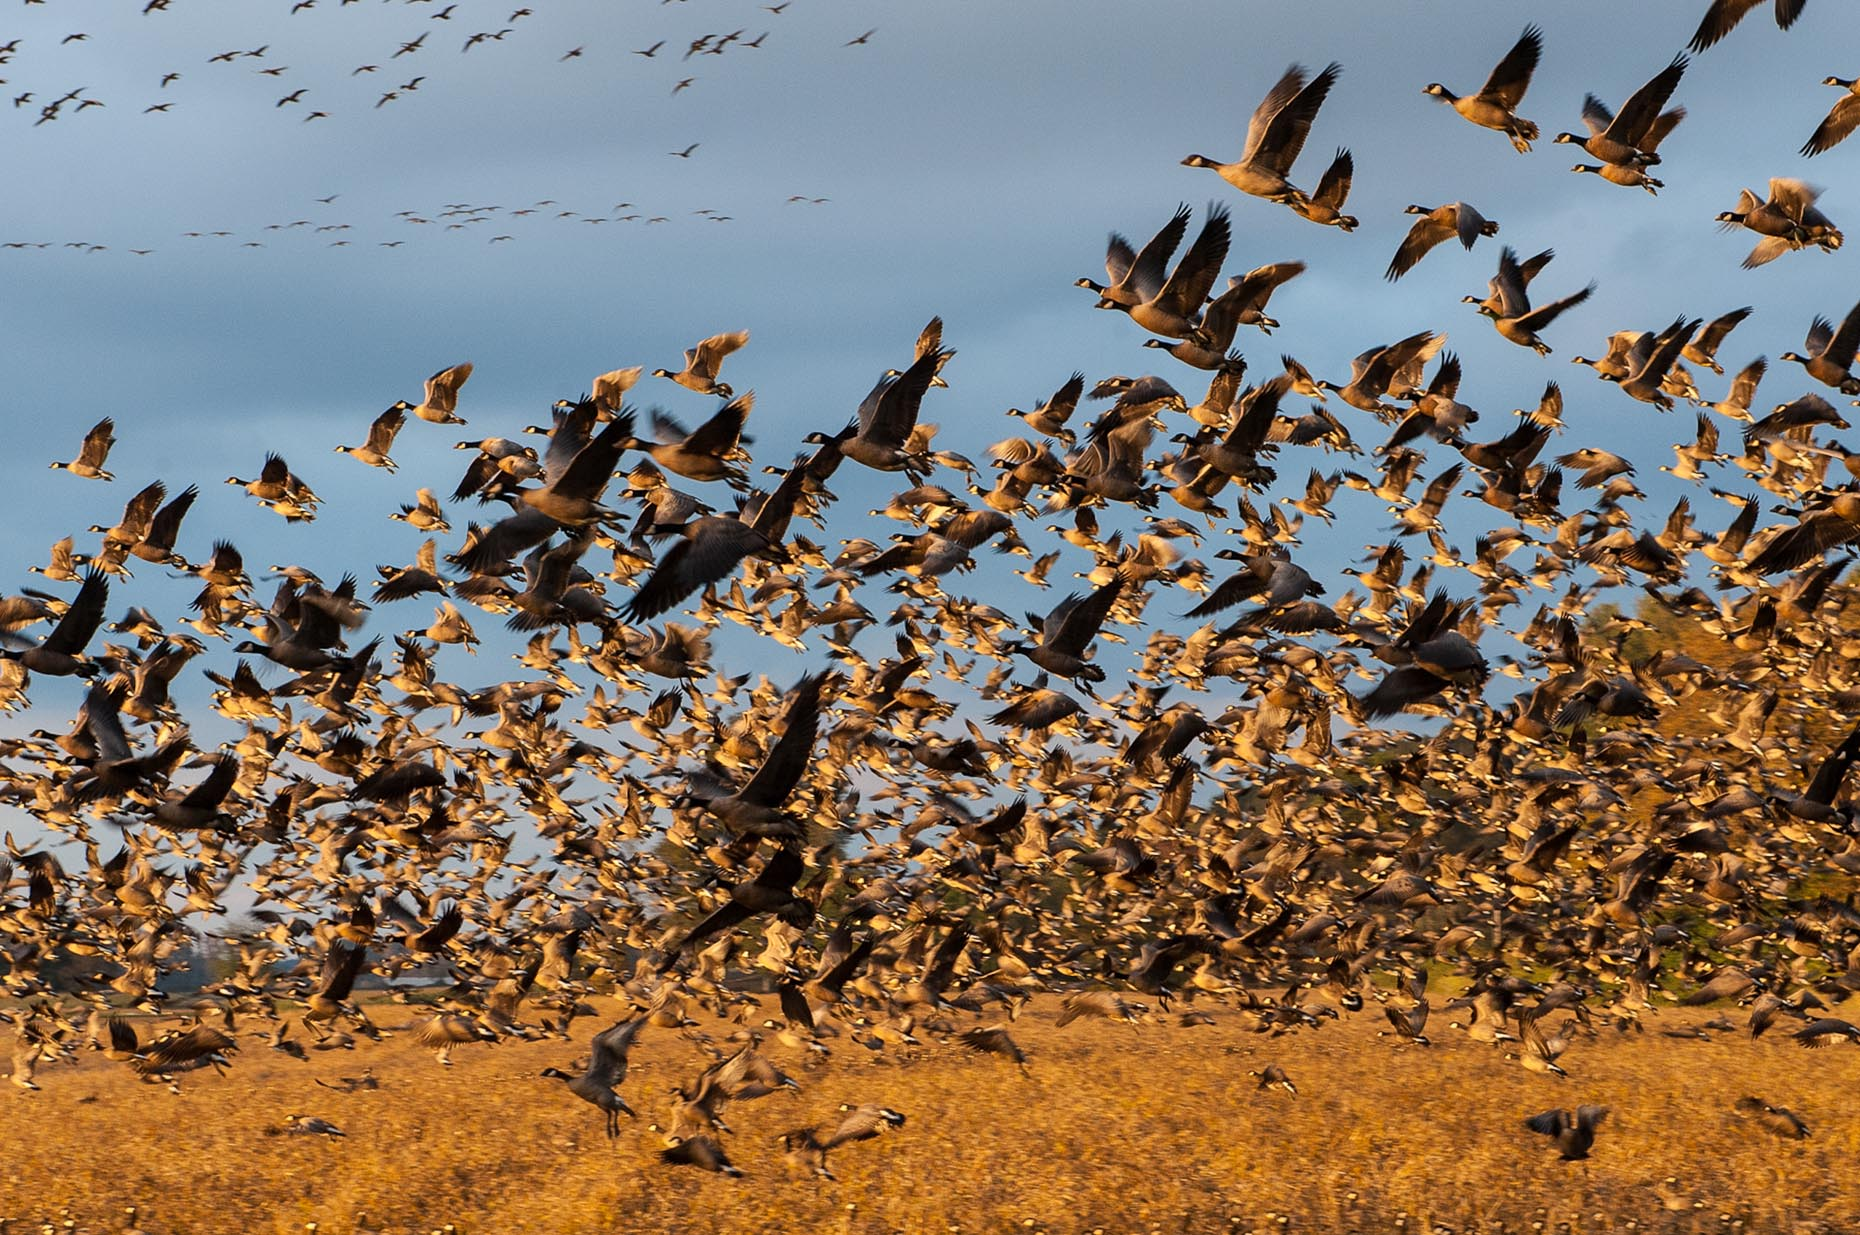 Photo of hundreds of Canadian geese taking off from field.